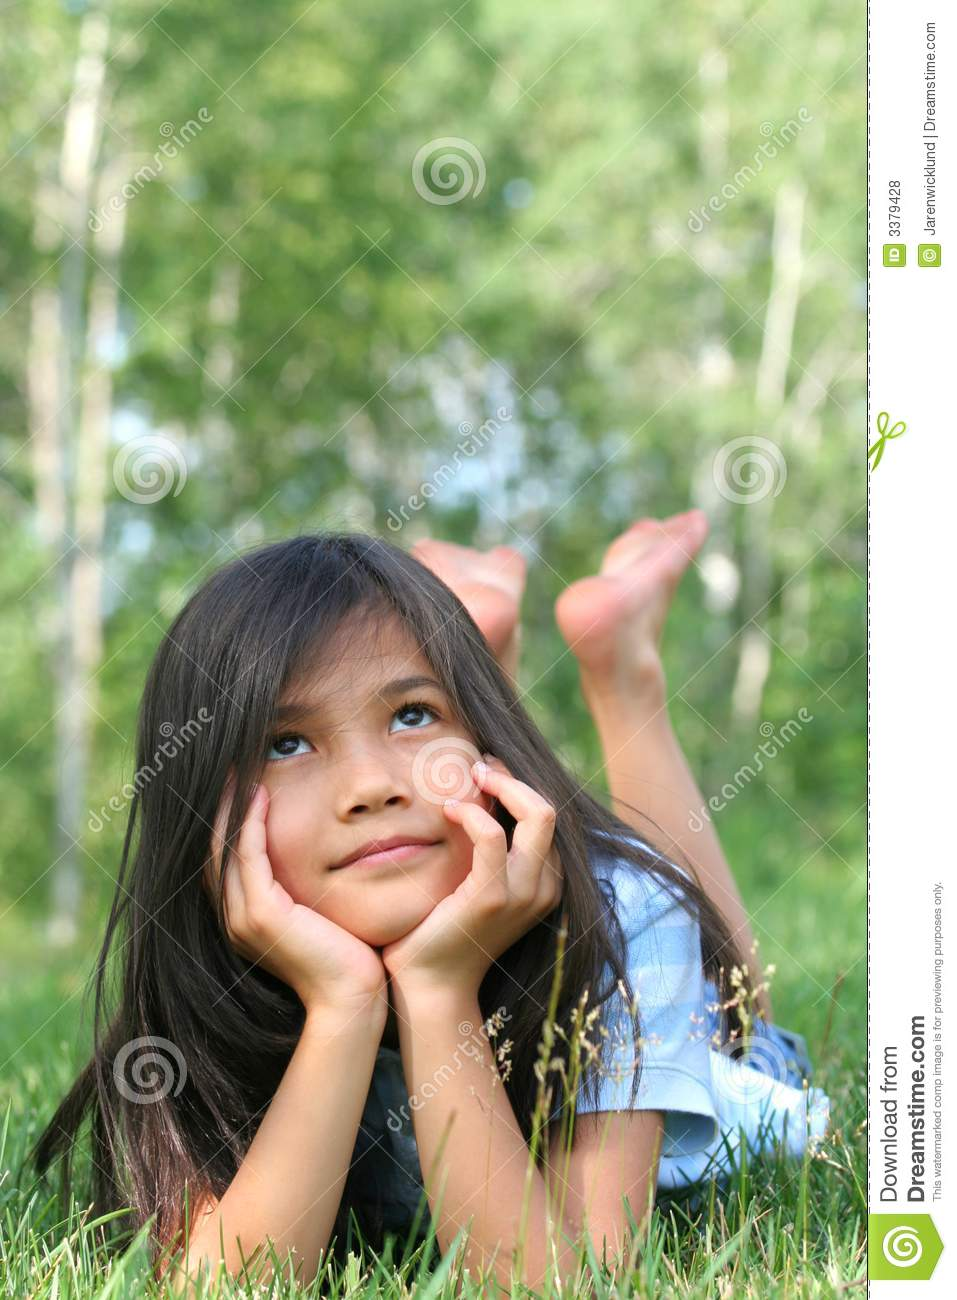 Child Lying Grass Thinking Stock Images - Download 248 ...